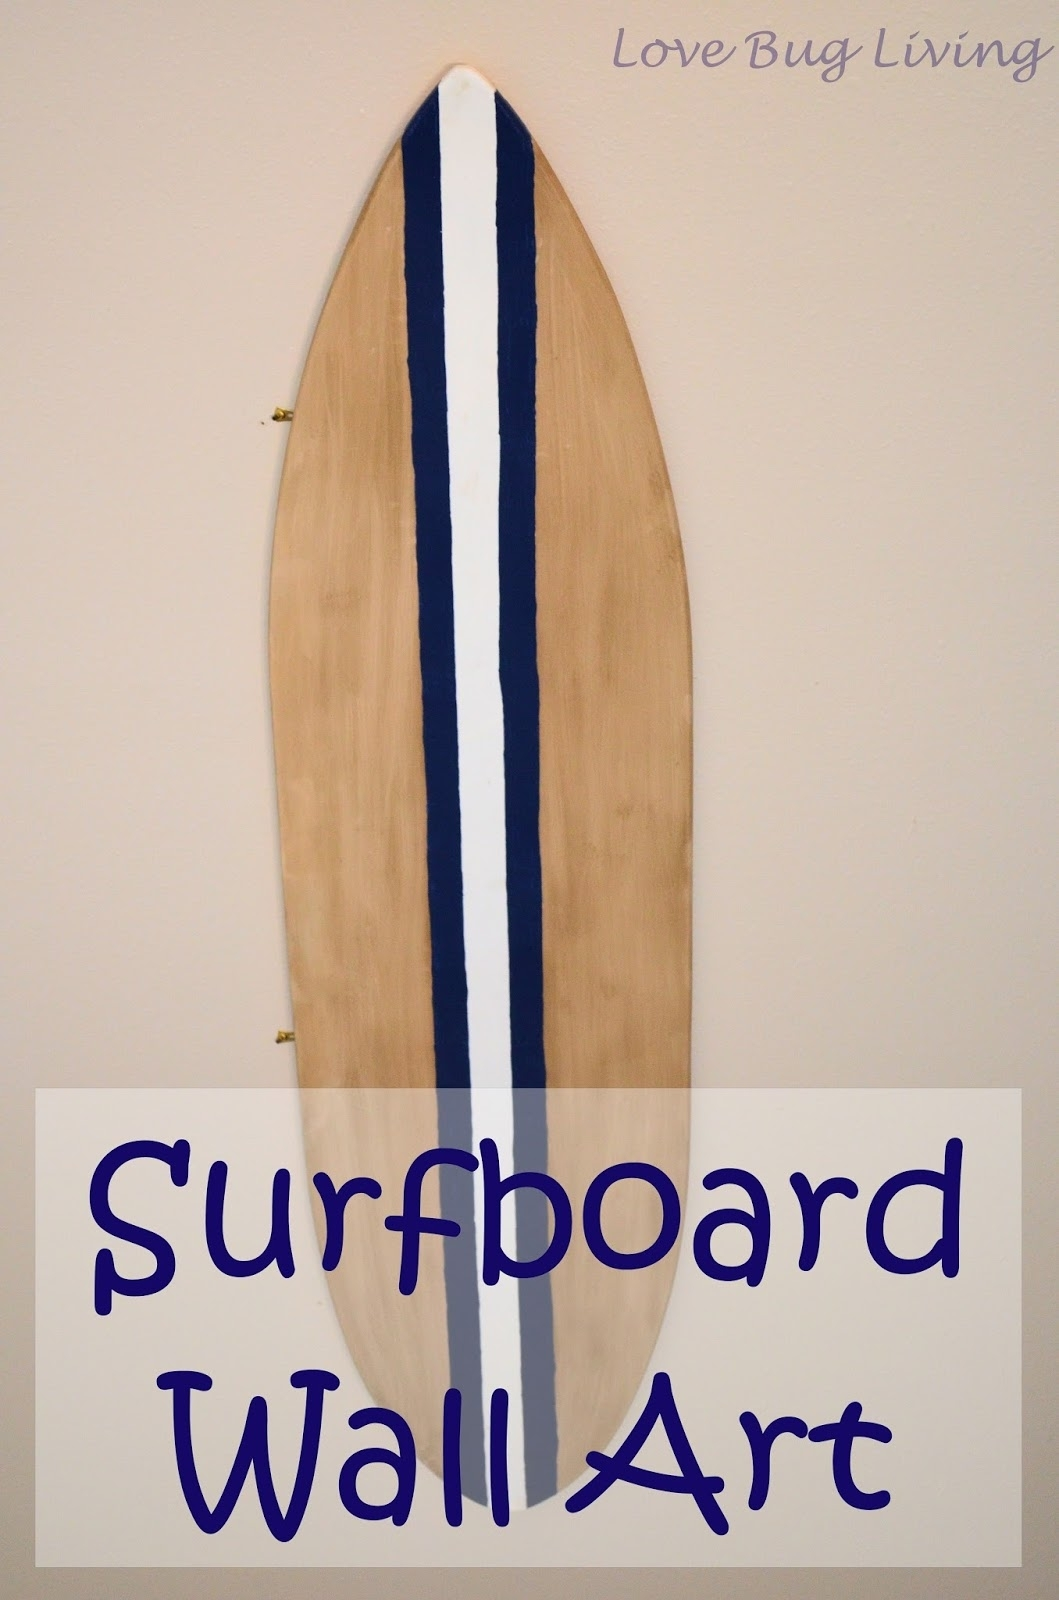 Love Bug Living: Surfboard Wall Art Throughout Most Current Surfboard Wall Art (View 16 of 20)